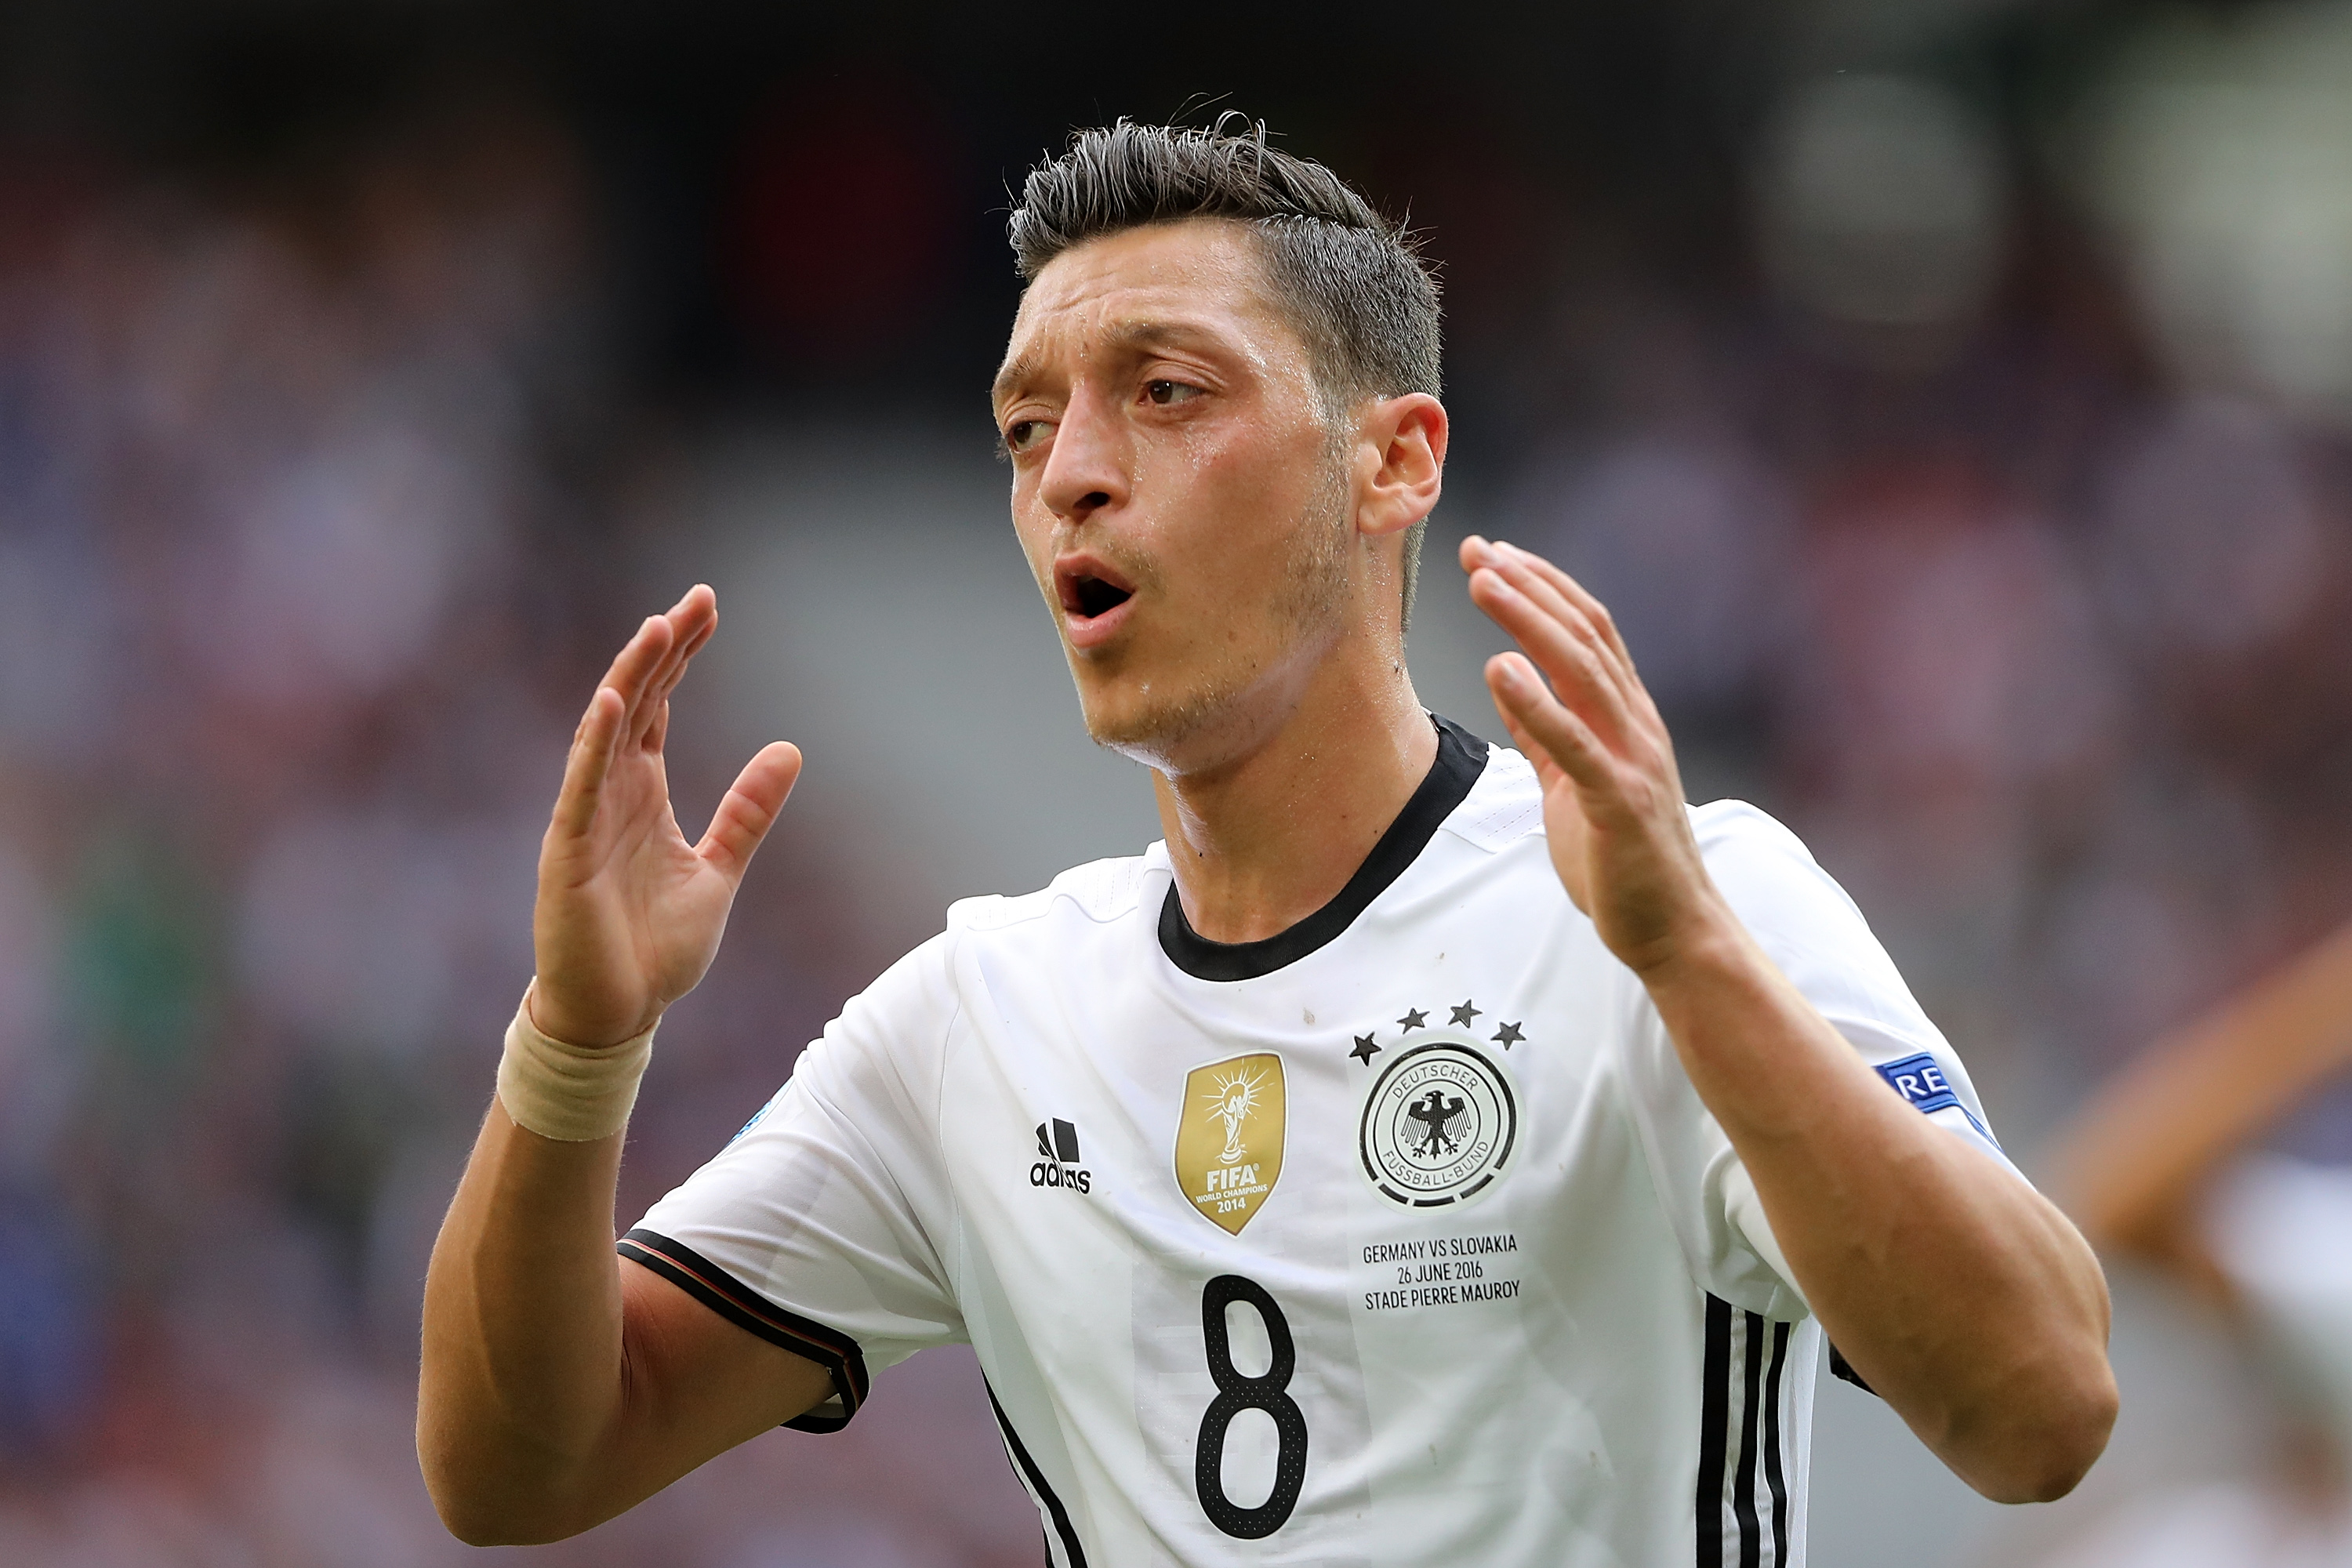 Joachim Low votes for Toni Kroos ahead of Mesut Ozil for FIFA Player of the Year award